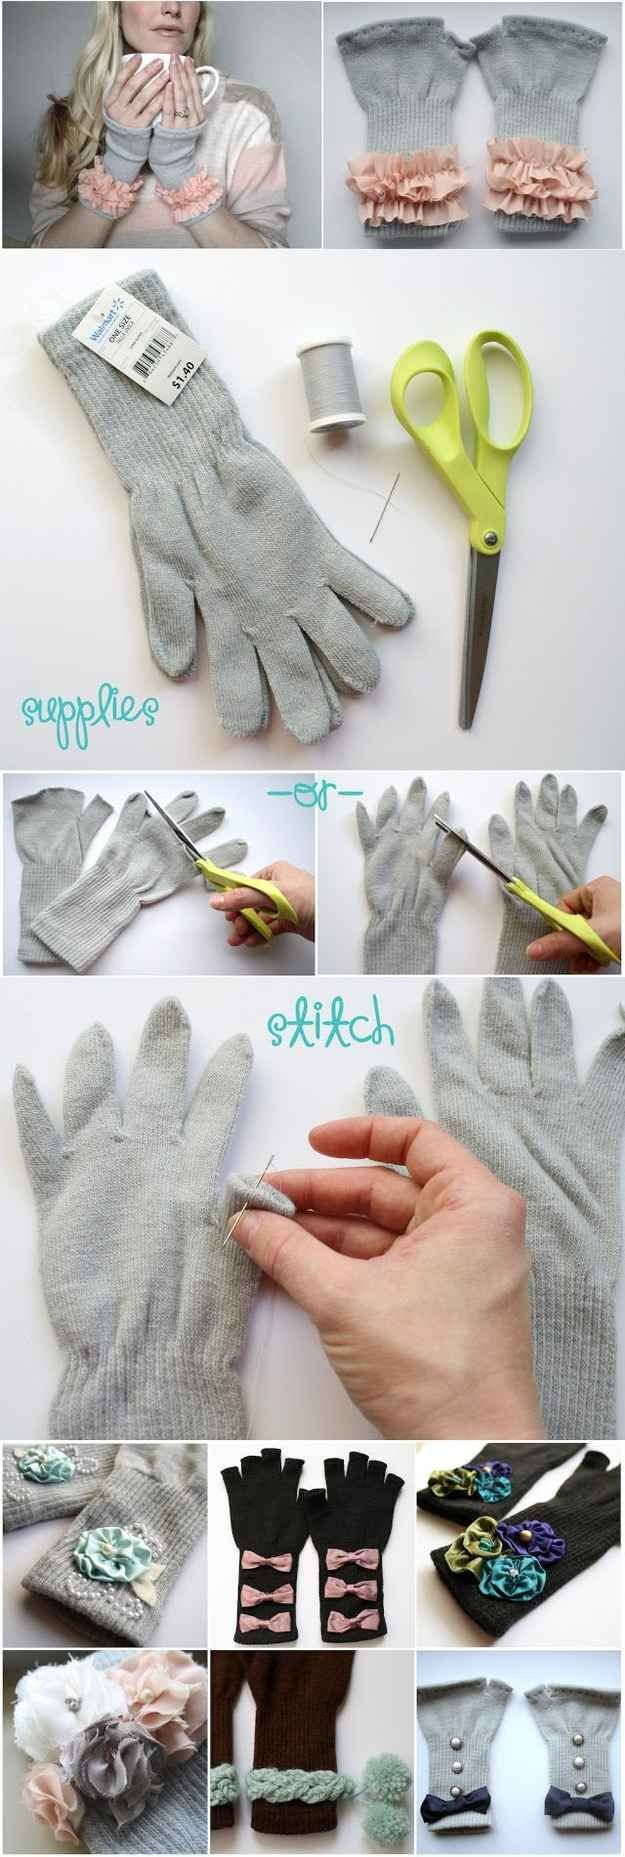 Personalizando tu guantes asiendolos unicos solo para ti Fingerless Gloves | 24 Creative Life Hacks Everyone Should Know Before Winter Comes